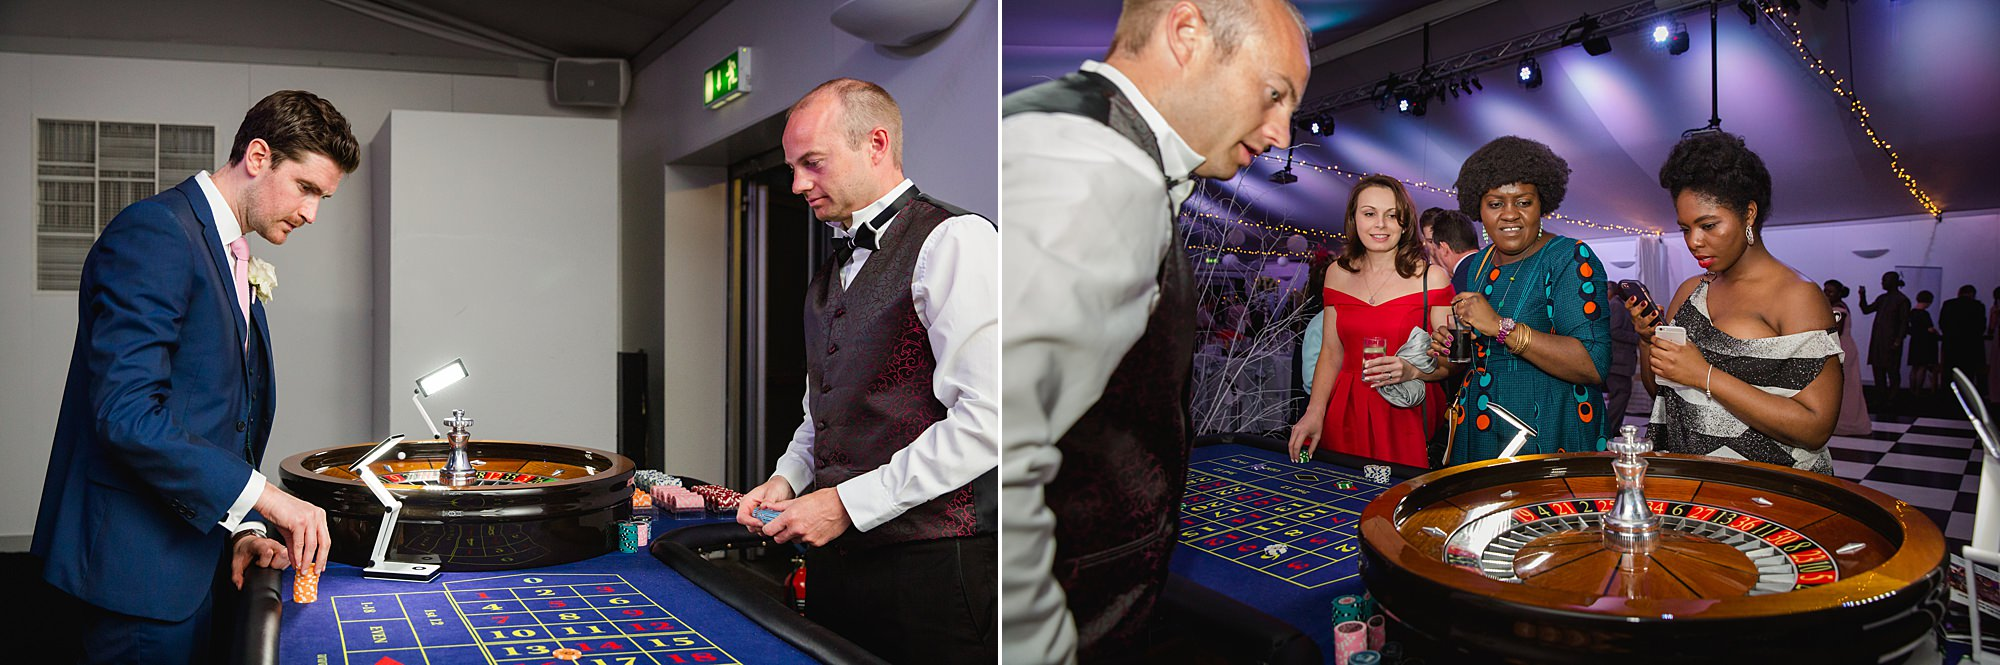 Bank of England Sports Centre wedding guests at casino tables